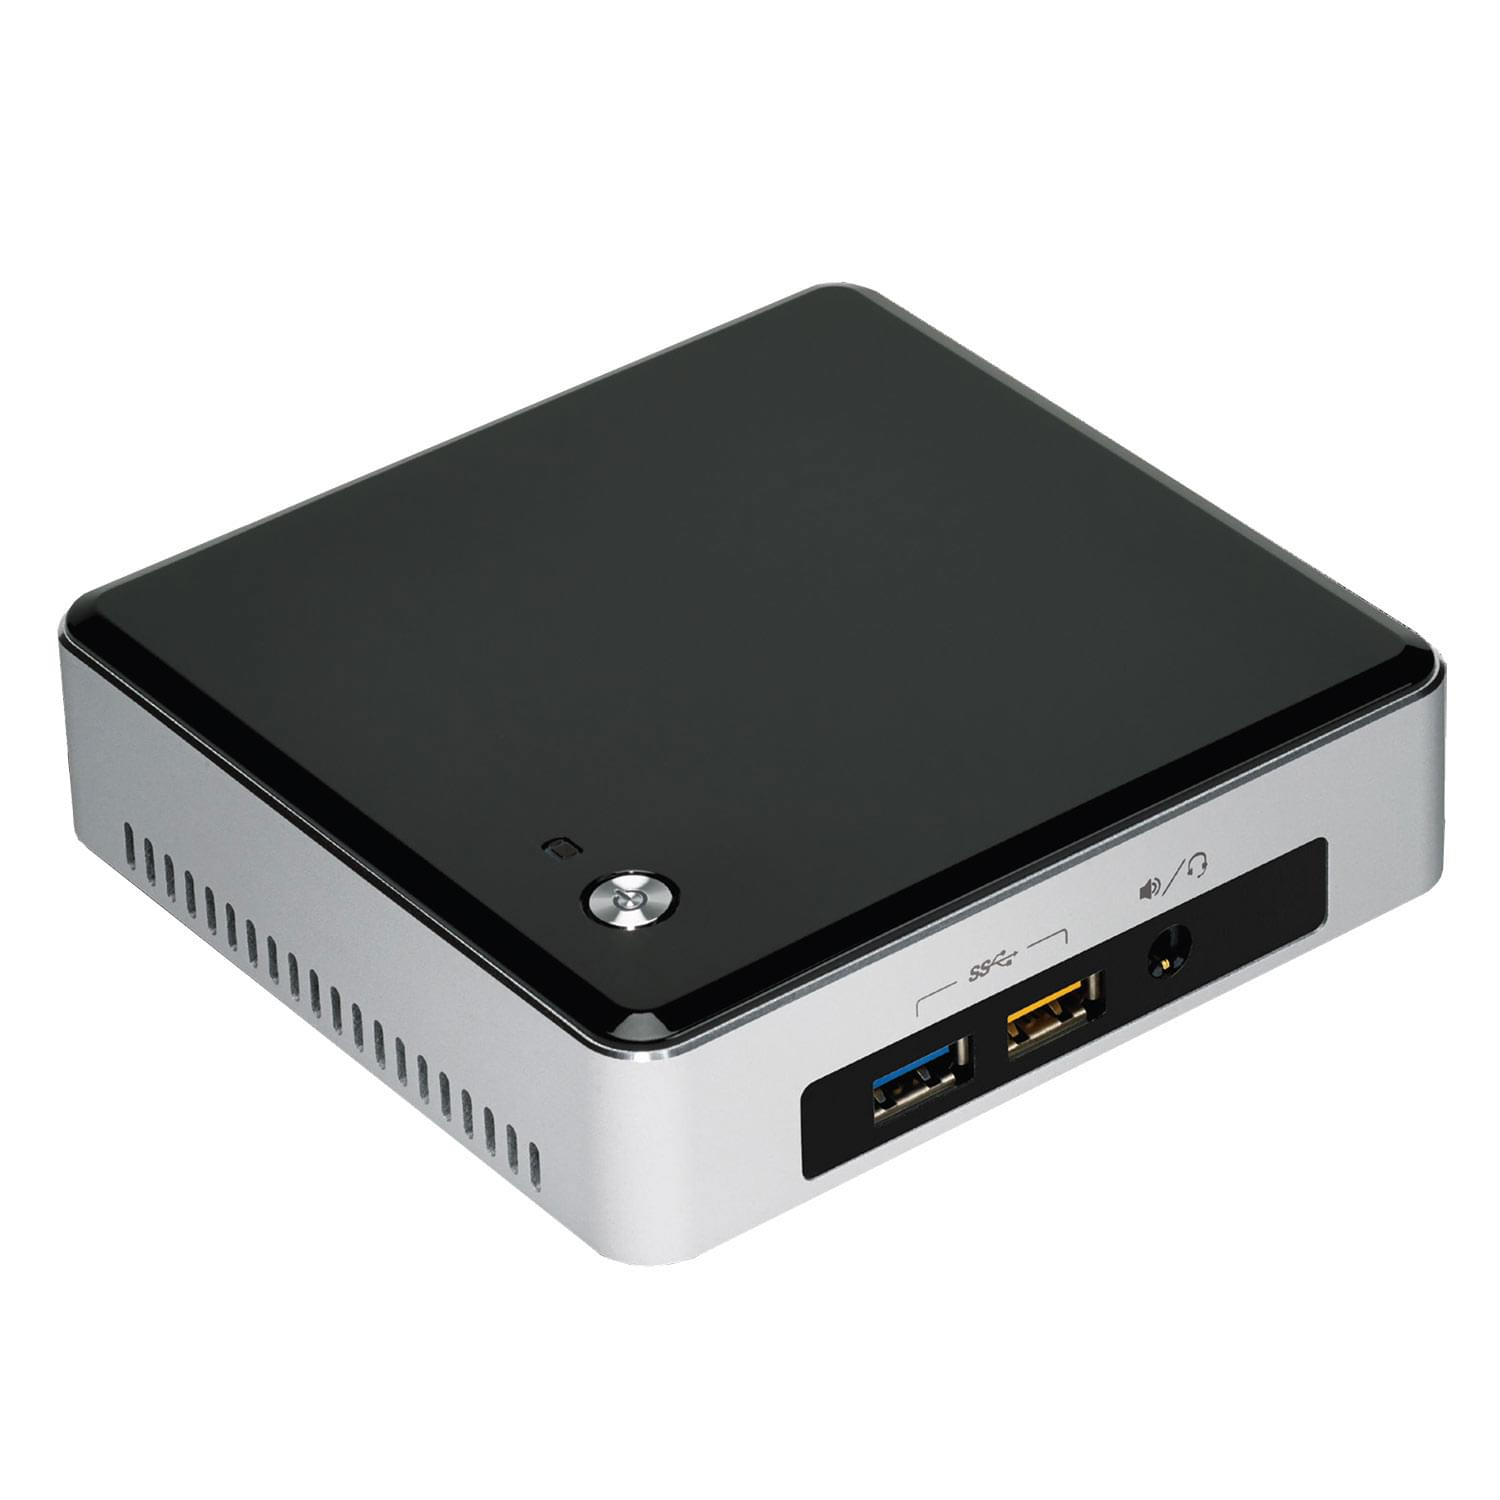 Intel NUC NUC5I3RYK - Barebone et Mini-PC Intel - Cybertek.fr - 0